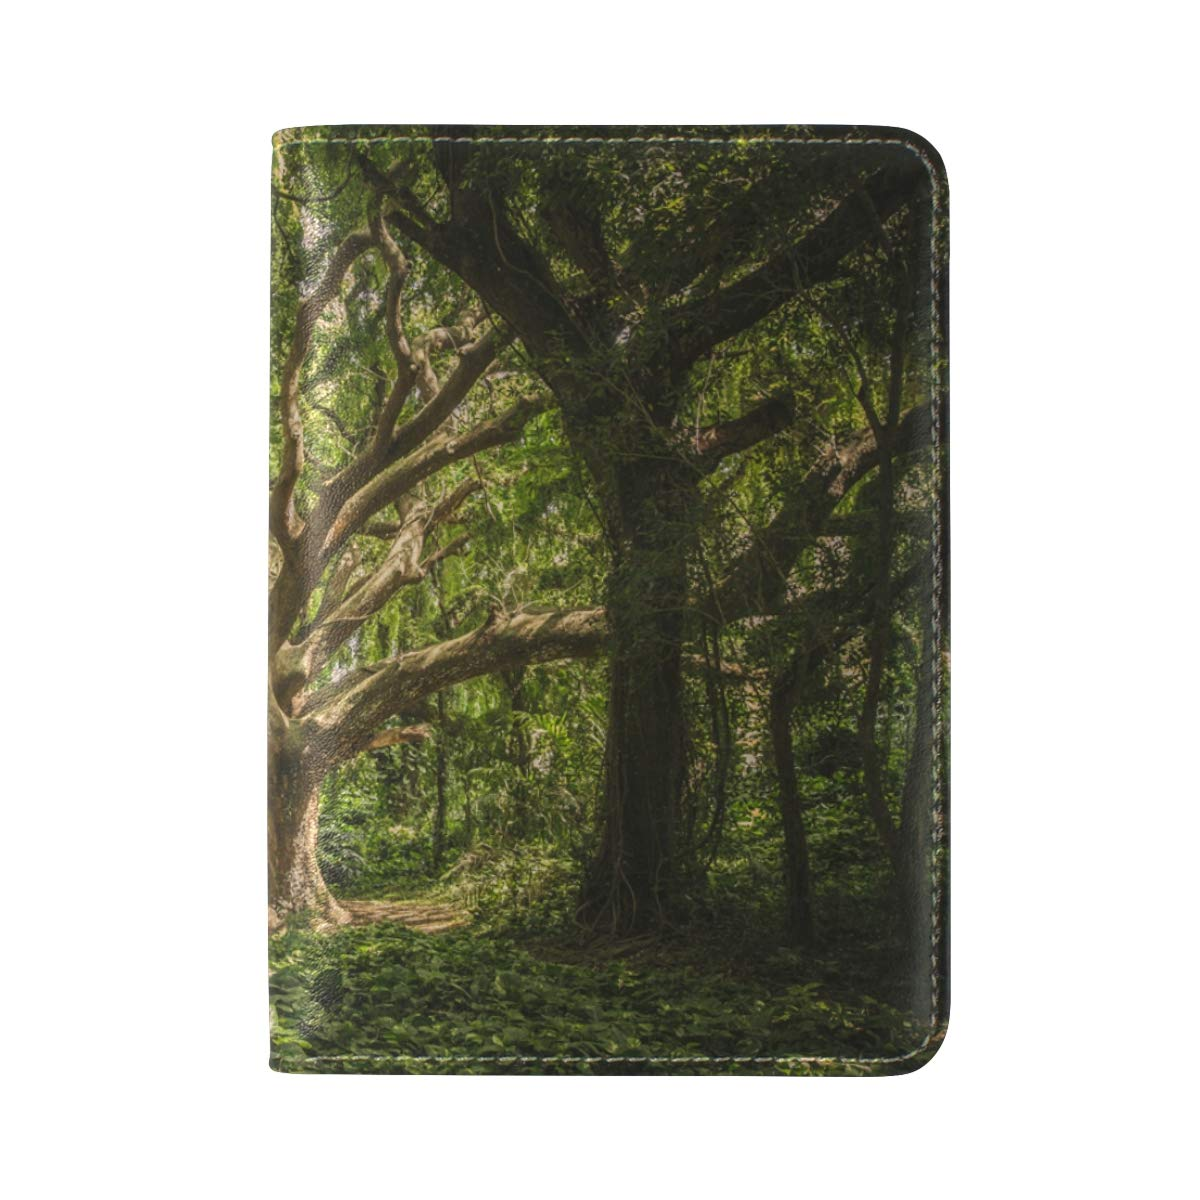 Tree Mysterious Woods Forest One Pocket Leather Passport Holder Cover Case Protector for Men Women Travel